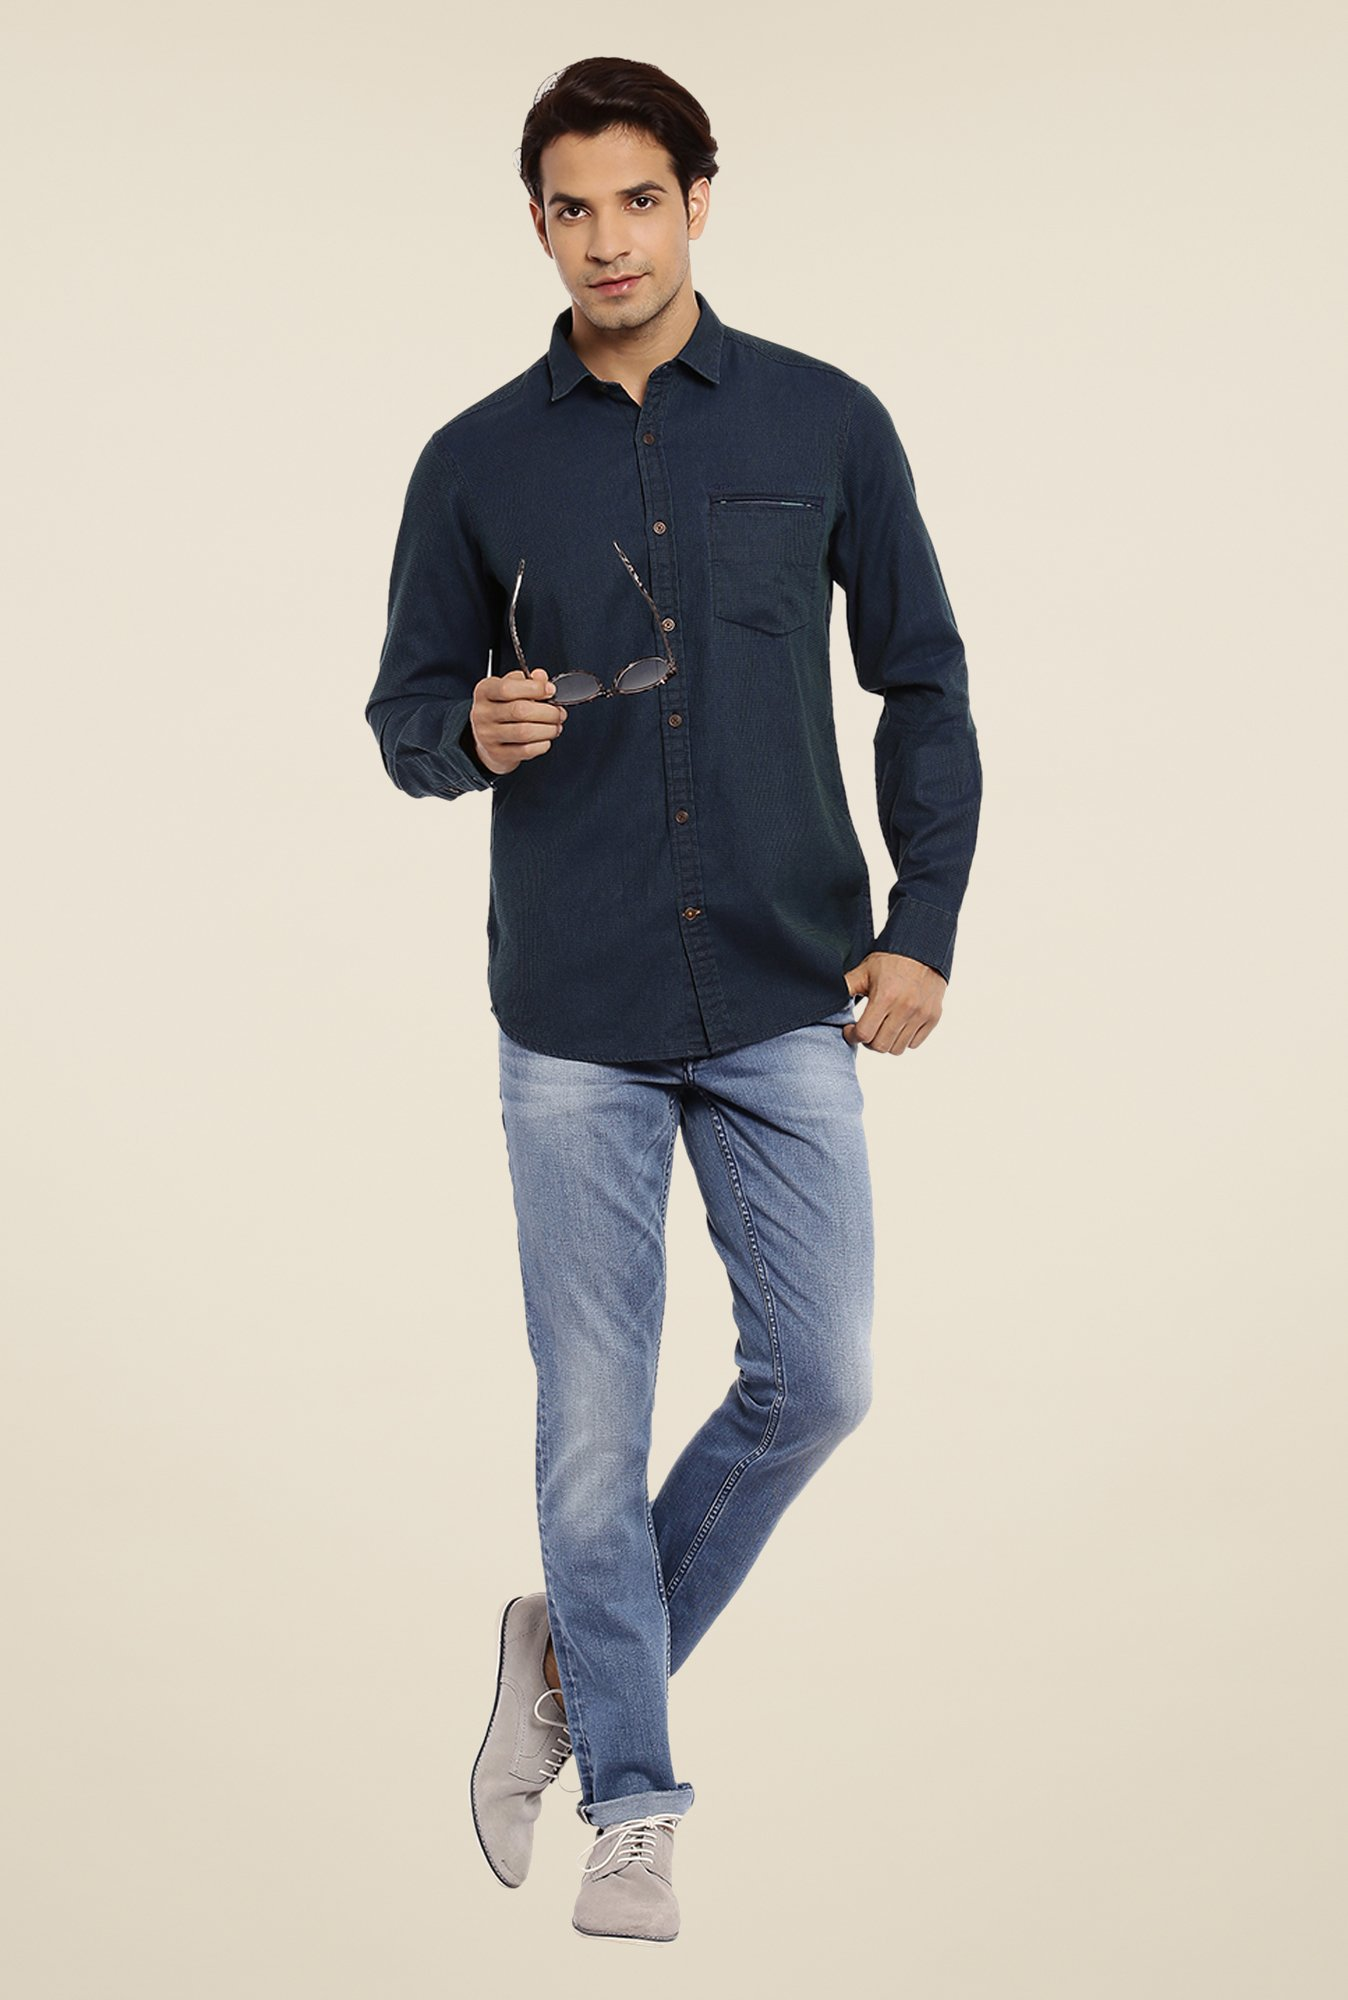 ColorPlus Navy Self Print Shirt